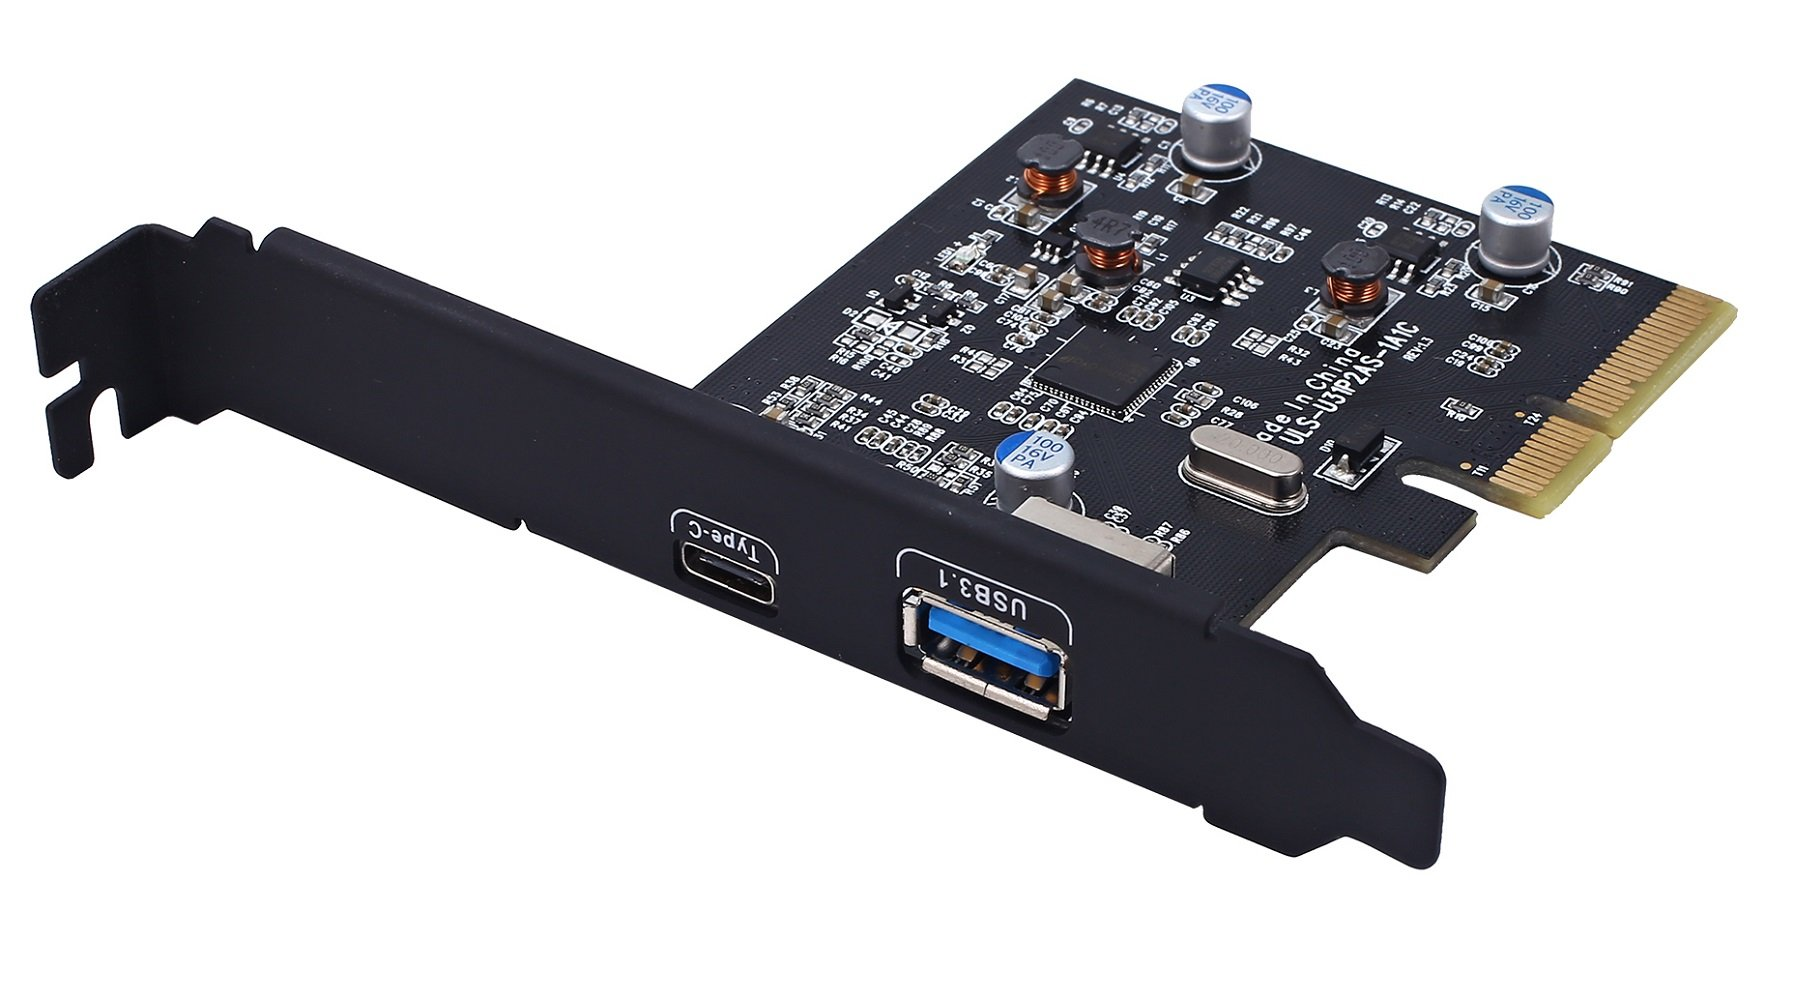 TOTOVIN PCI-E PCI Express to USB 3.1 Gen 2 (10 Gbps) Type A+Type C Expansion Card Asmedia Chipset for Windows 7/8/8.1/10/Linux Kernel (Type A+Type C) by TOTOVIN (Image #1)